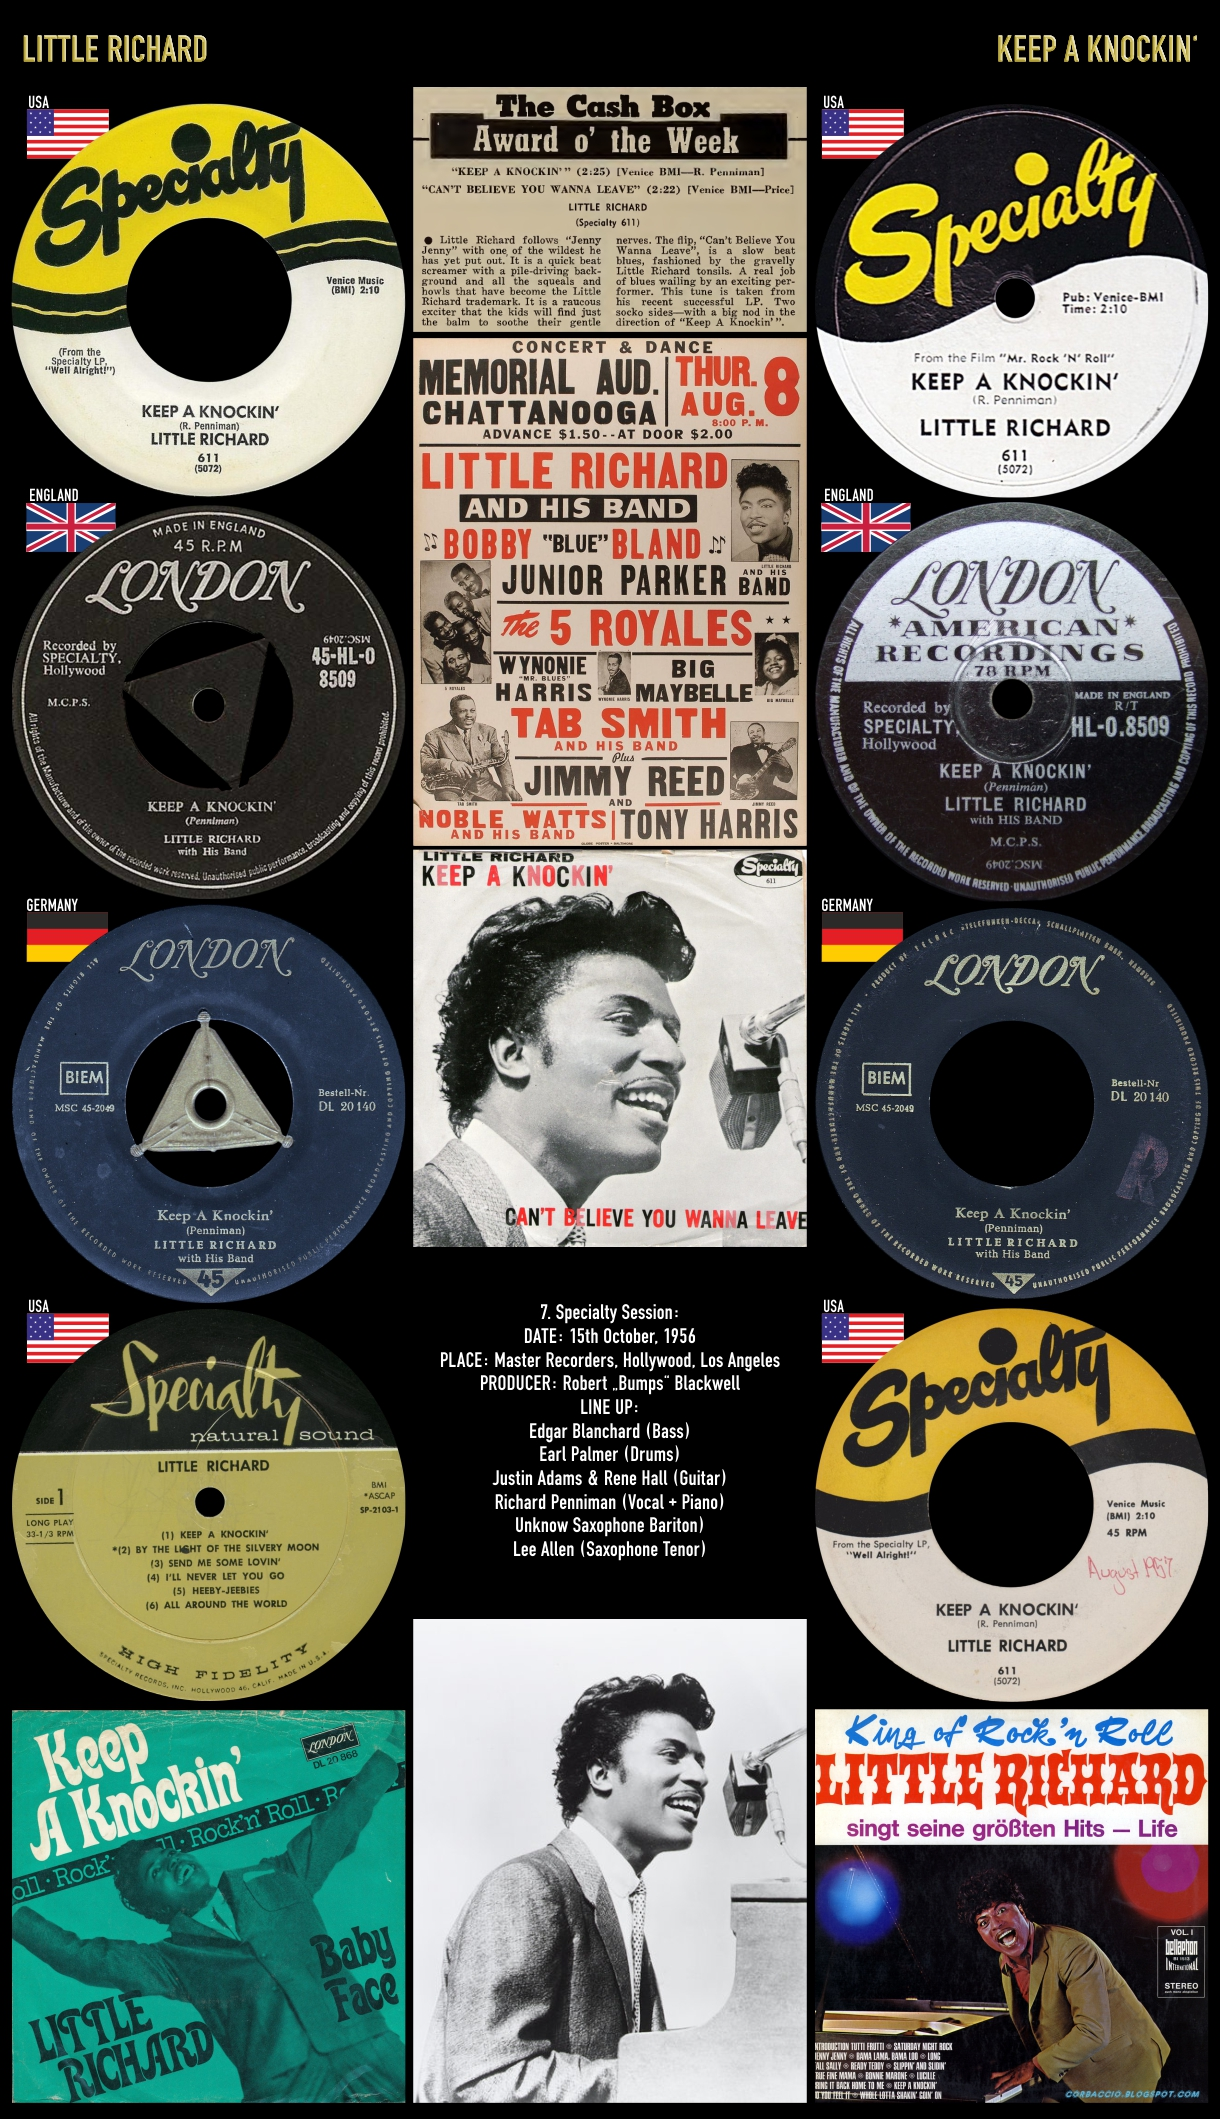 570928_Little Richard_Keep A Knockin'